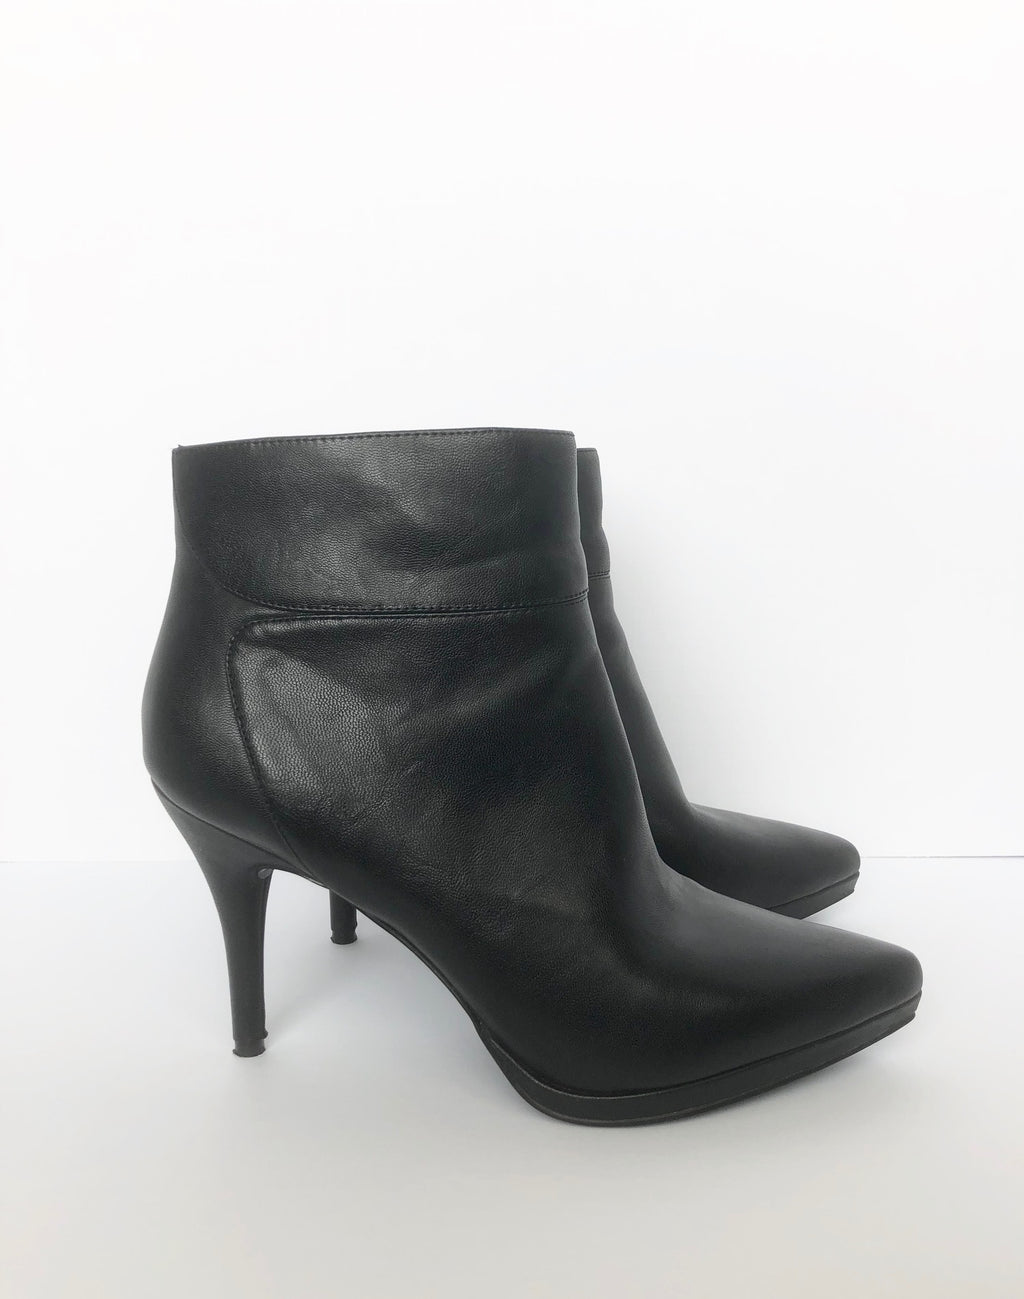 Nine West Black Ankle Boots Size 9.5